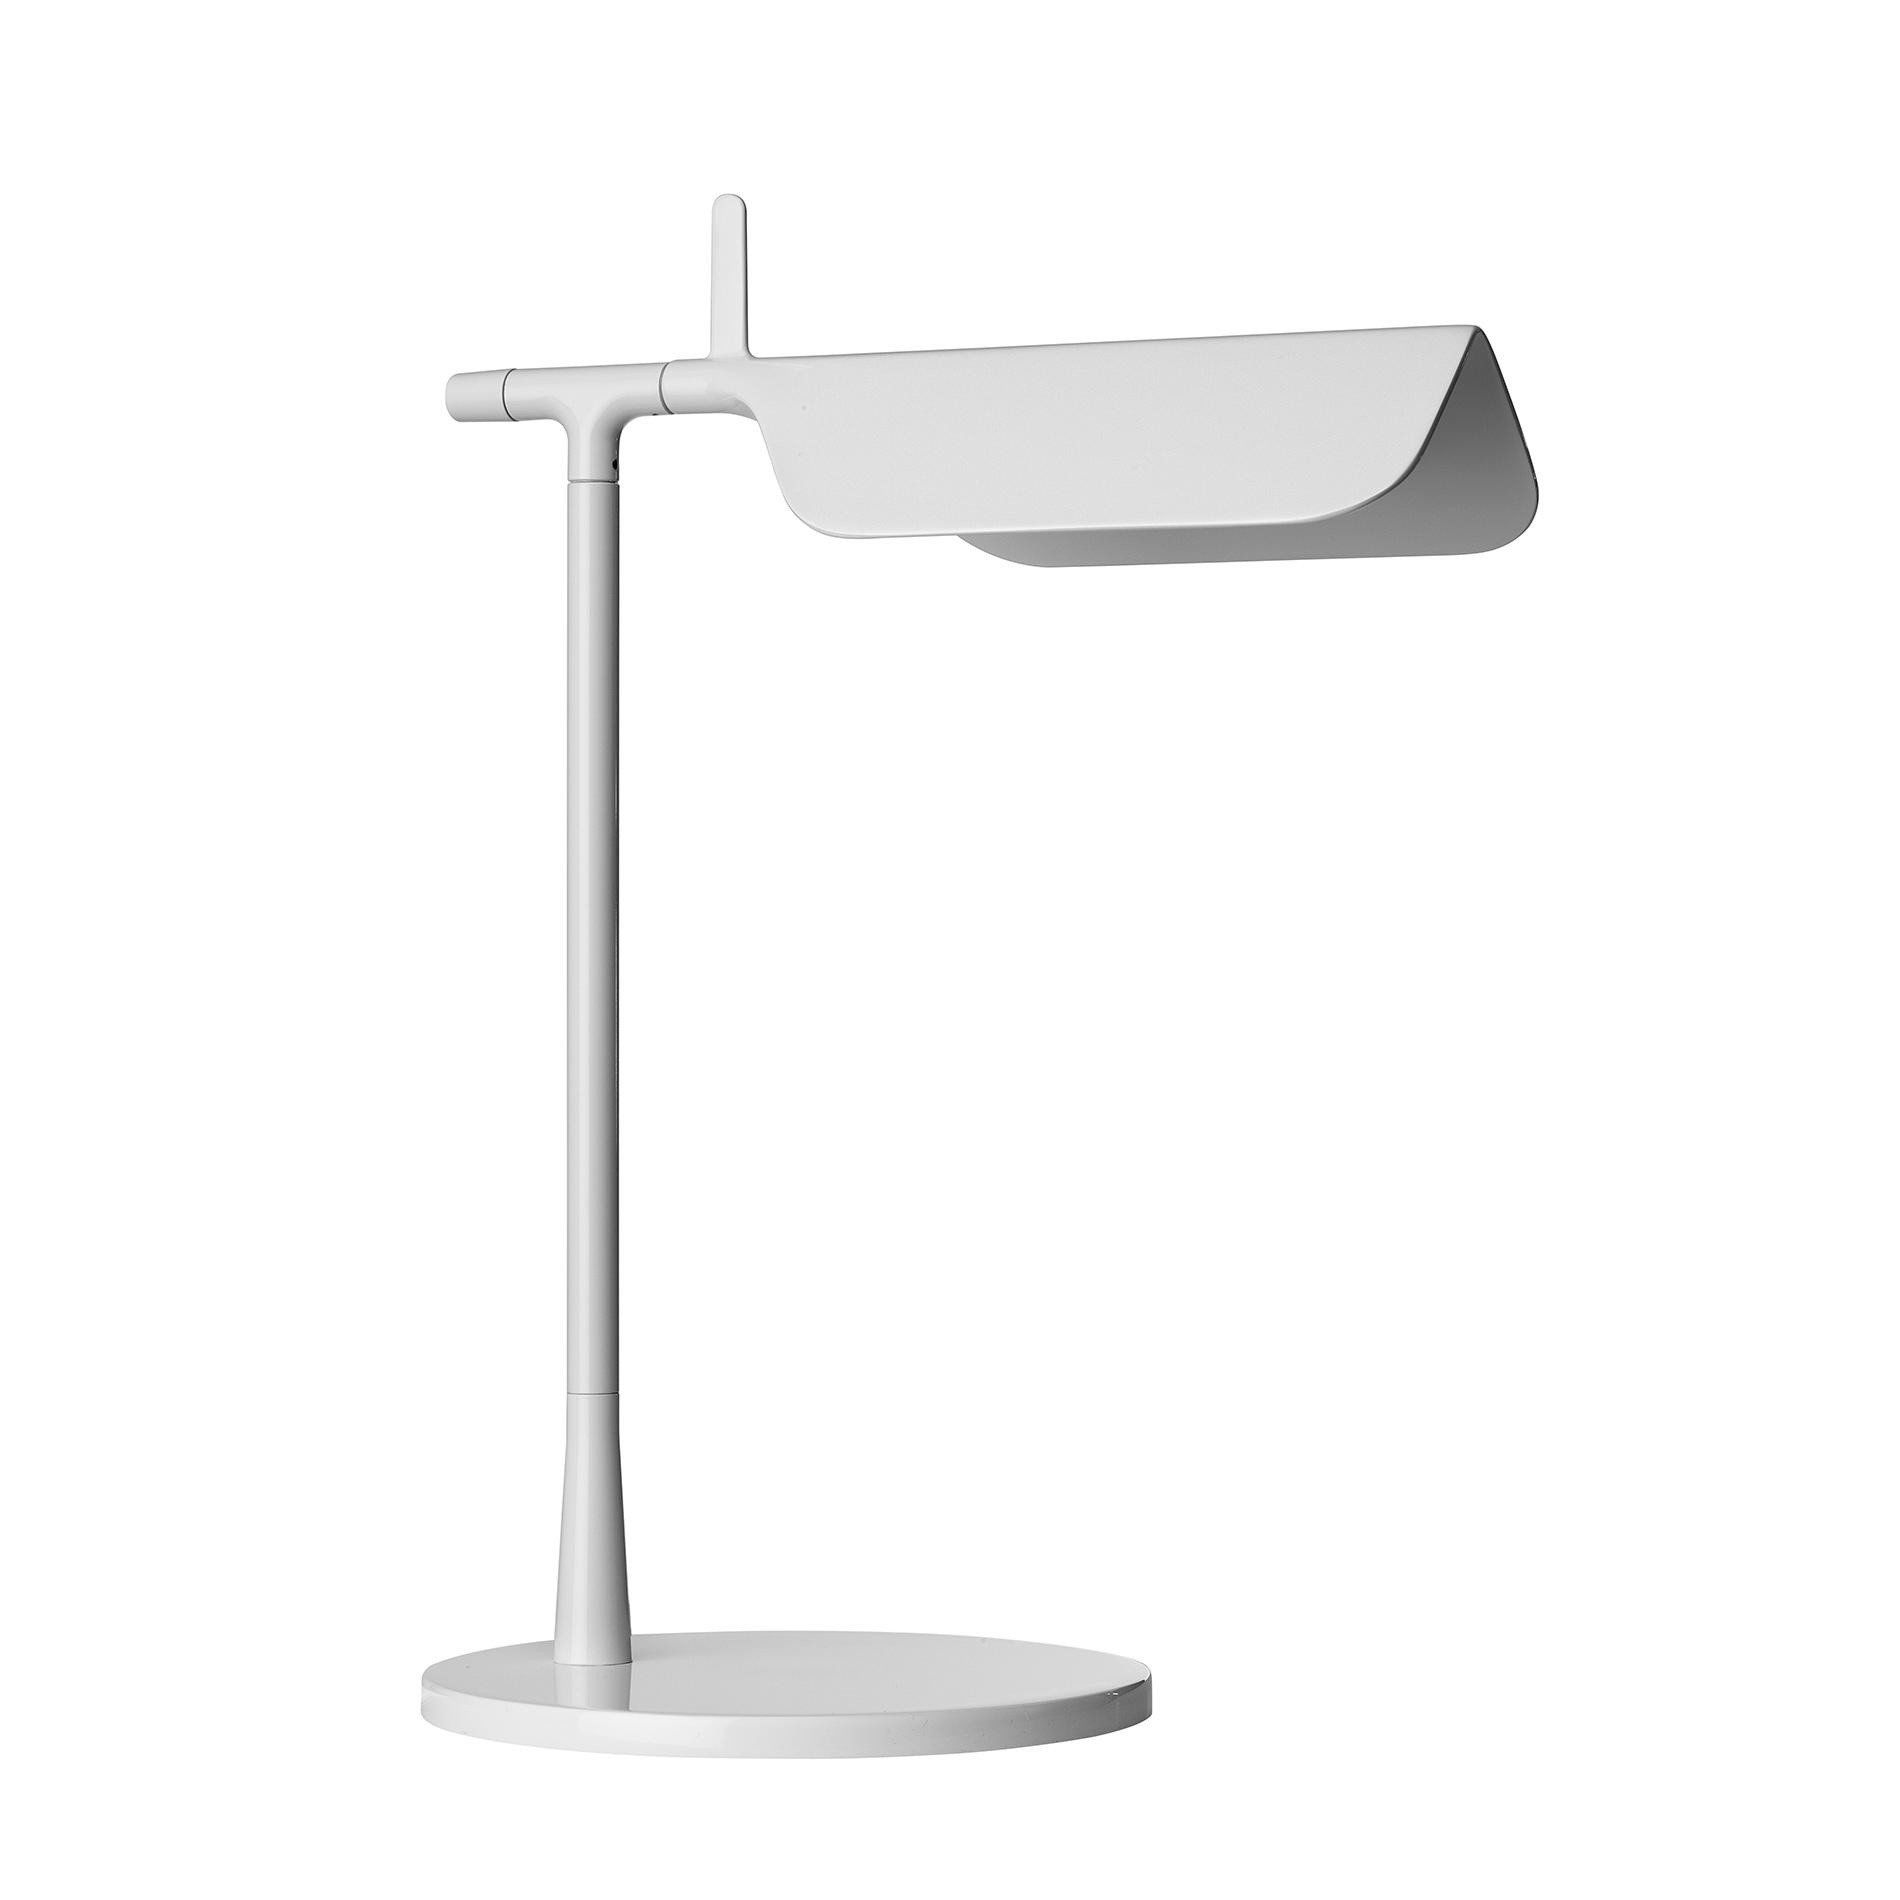 Tab T LED Table Lamp | Flos | AmbienteDirect.com for Flos Tab Table Lamp  181obs